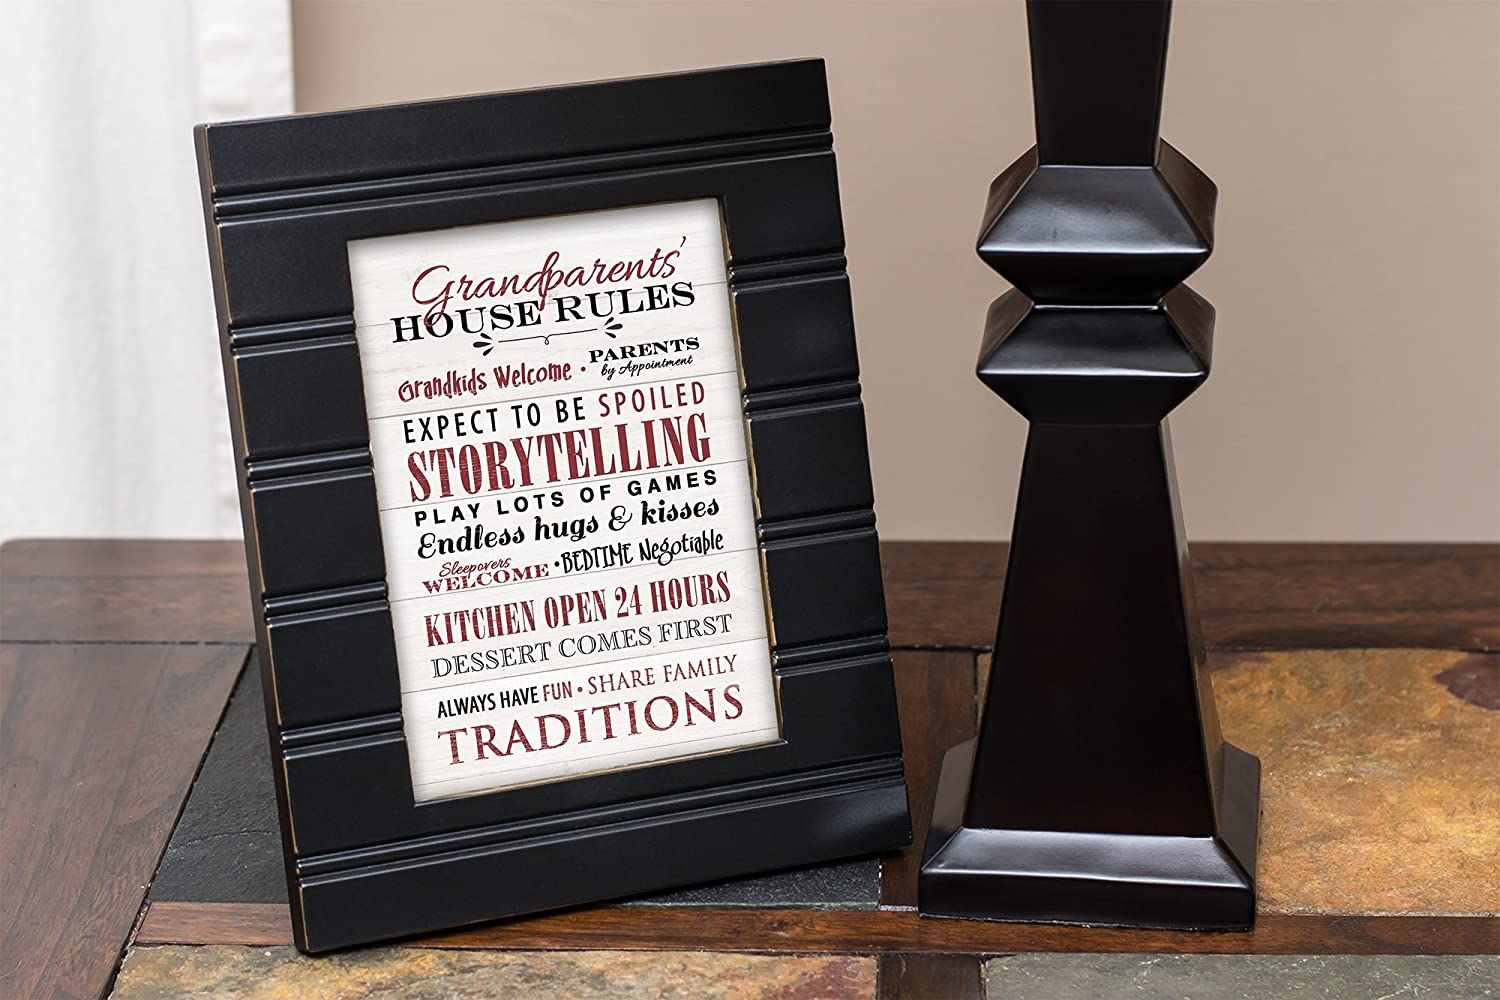 Grandparents House Rules Black with Gold Trim 8 x 10 Framed Wall Art Plaque